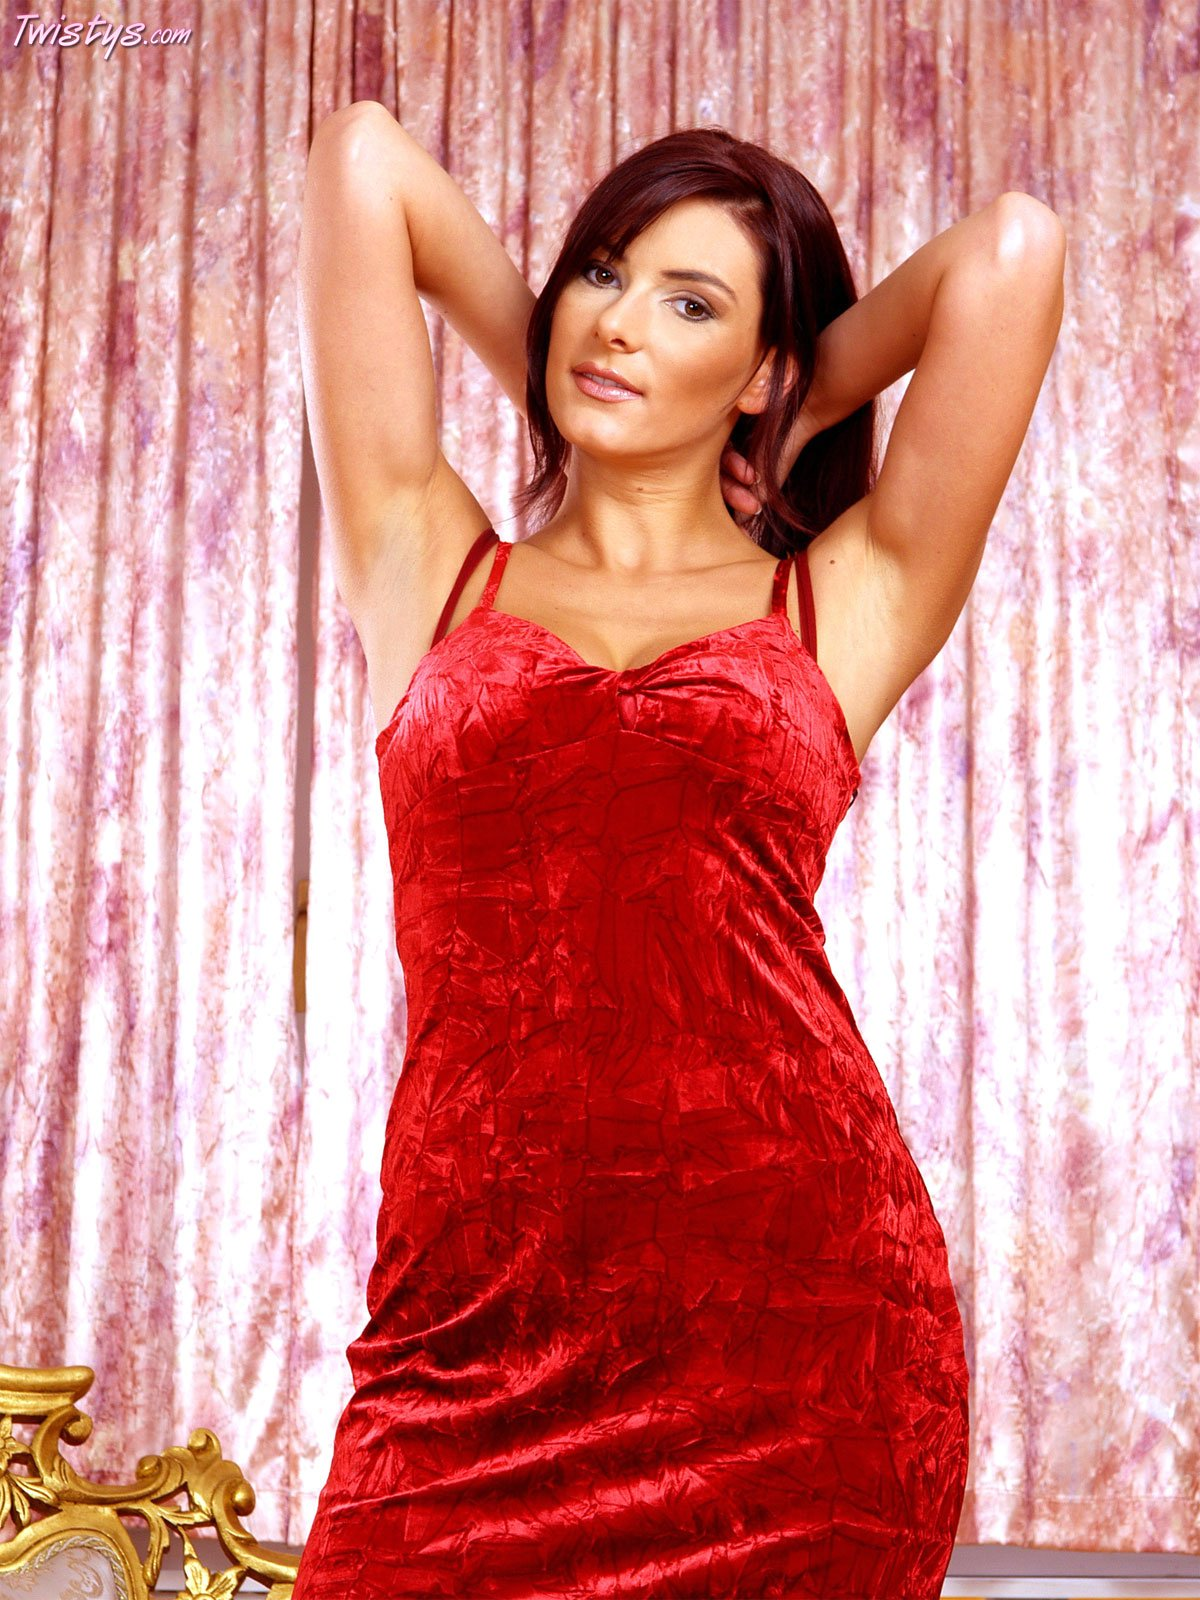 red-dress-pussy